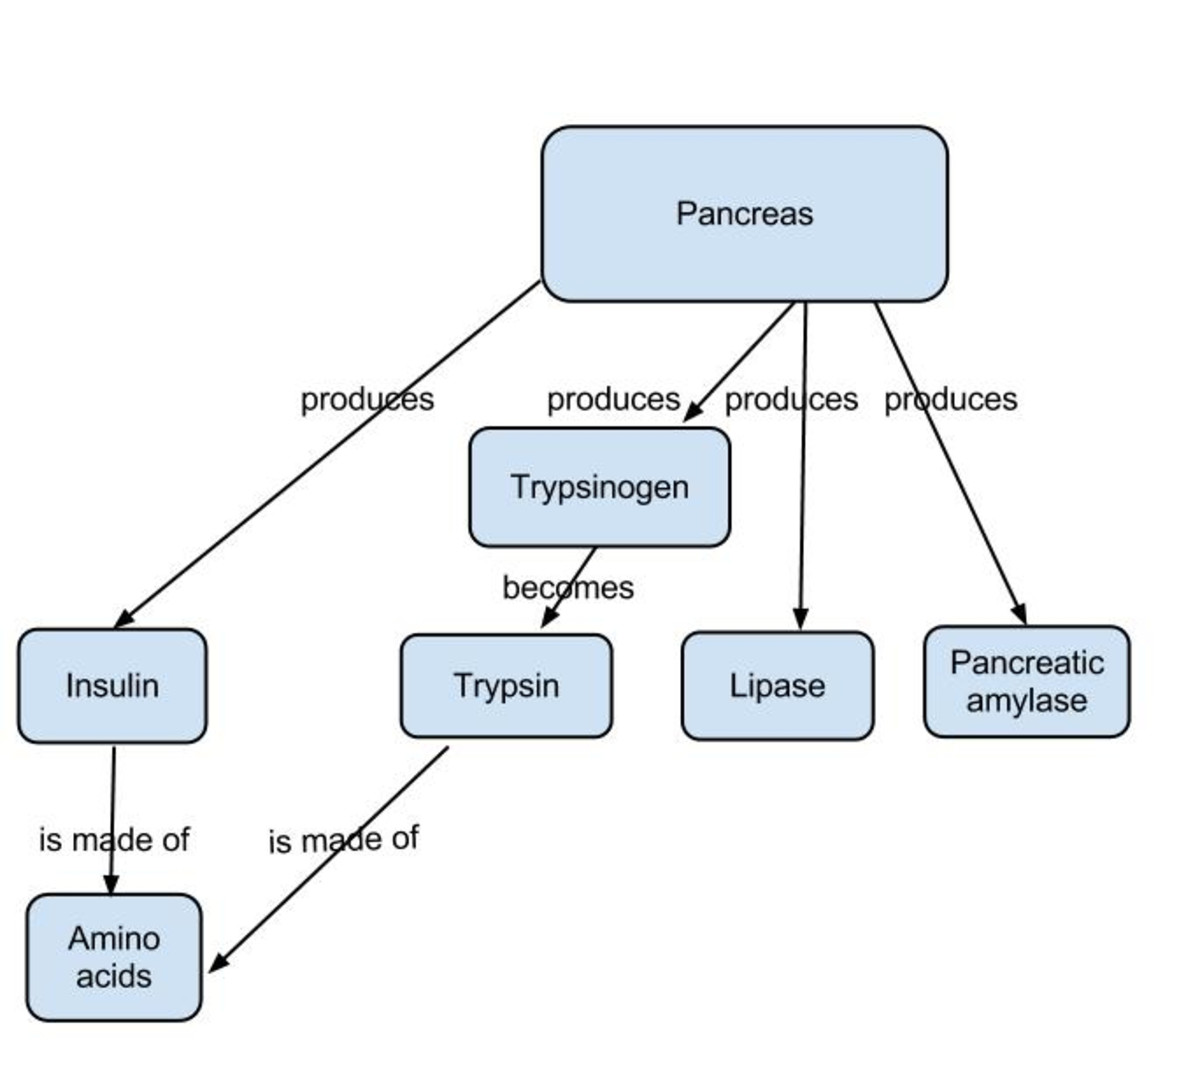 A section of a concept map